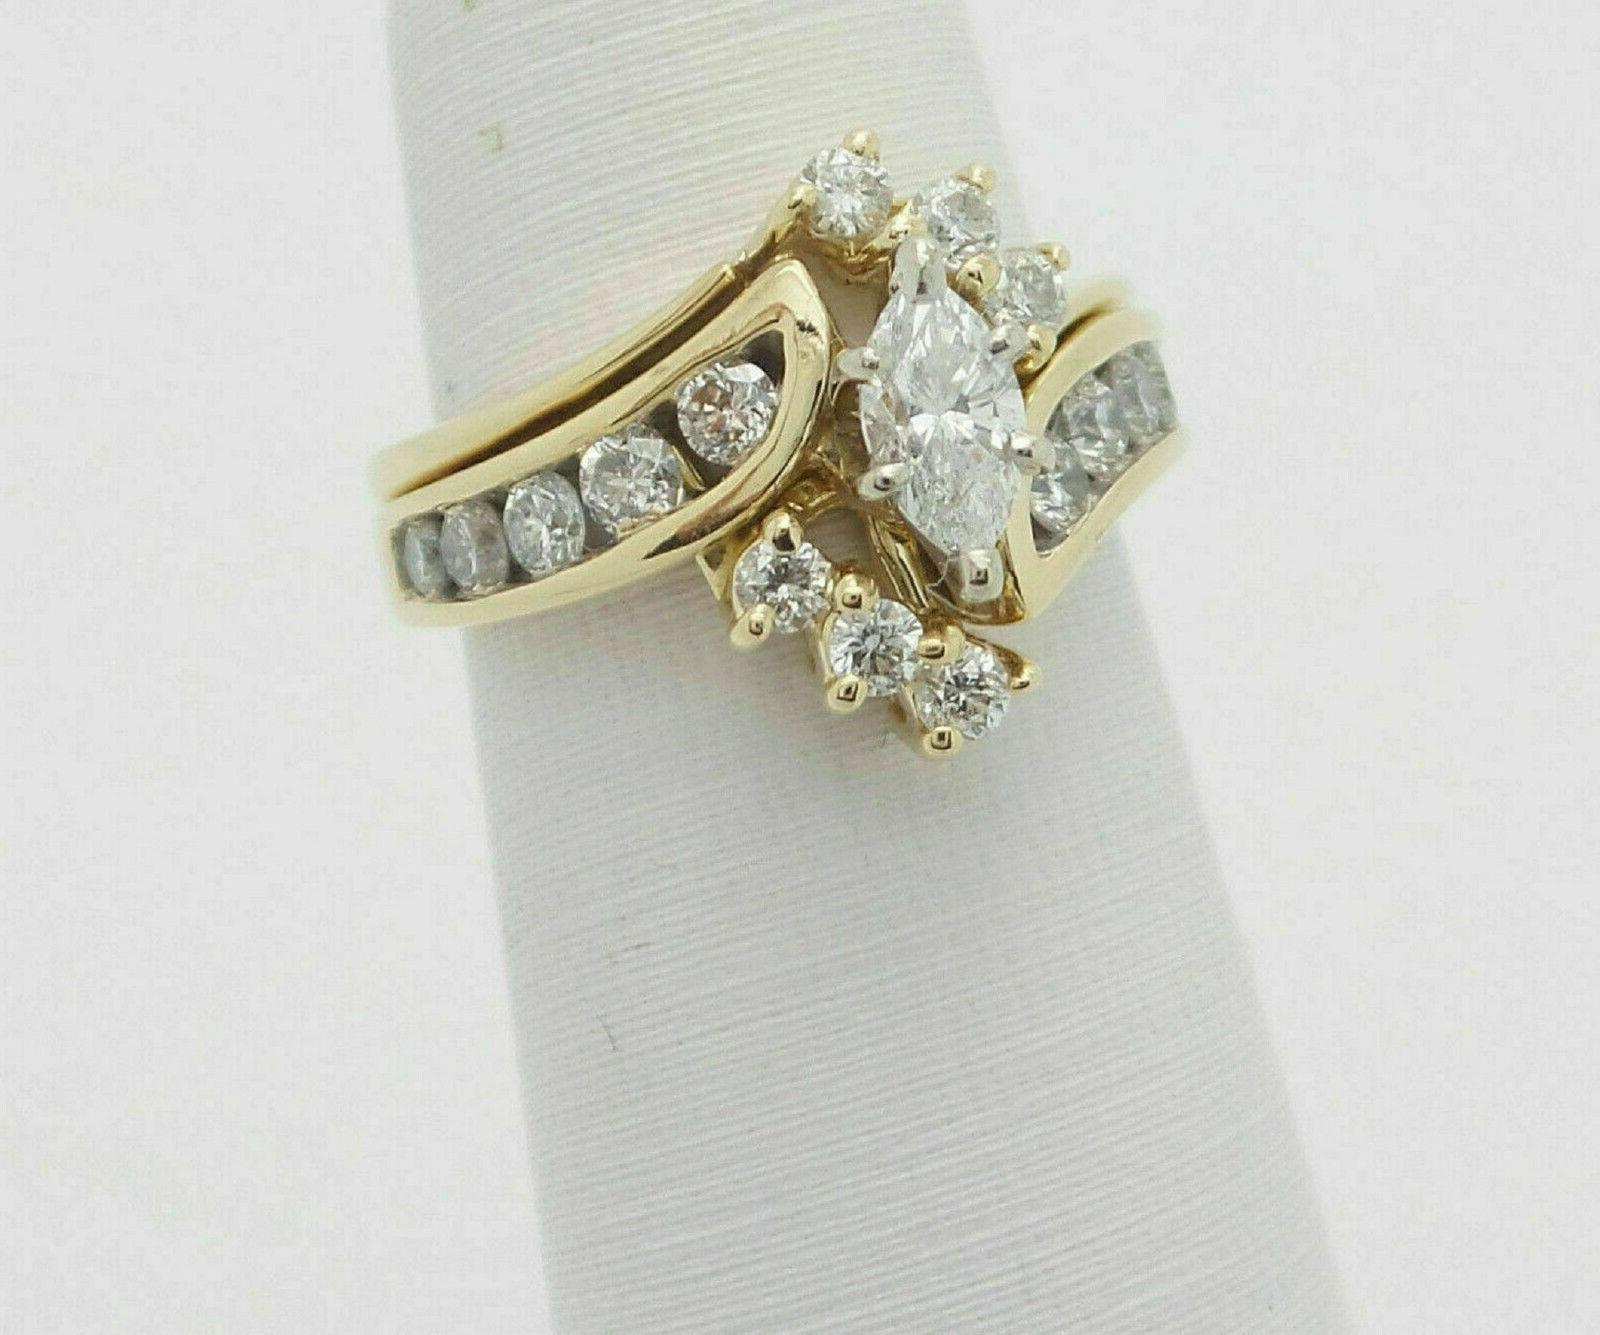 2.76Ct Marquise Diamond Engagement Band Ring Solid 14K Yellow